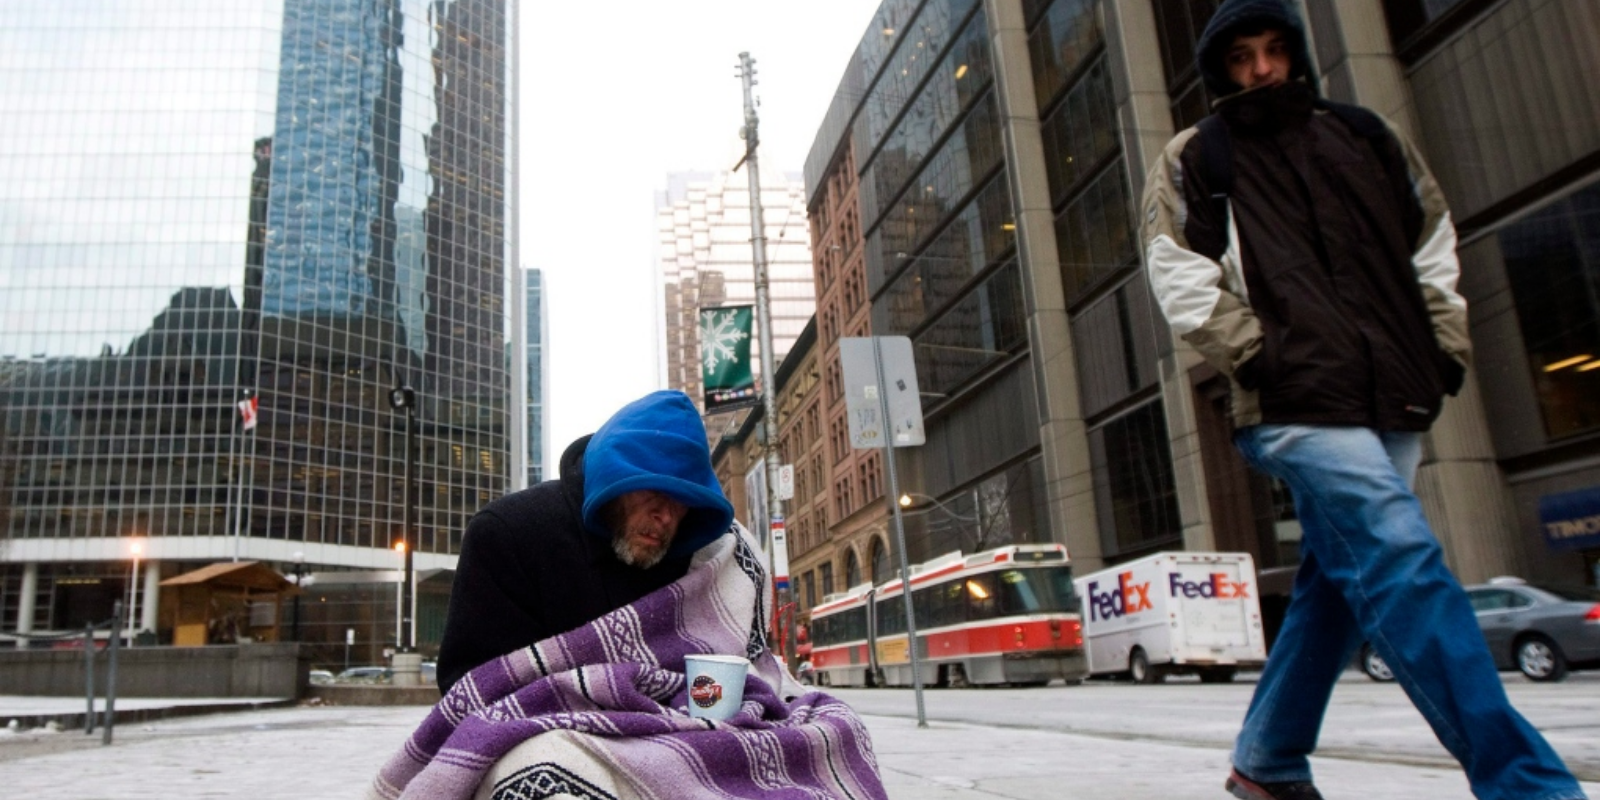 One in three Canadians say they won't recover from financial crisis